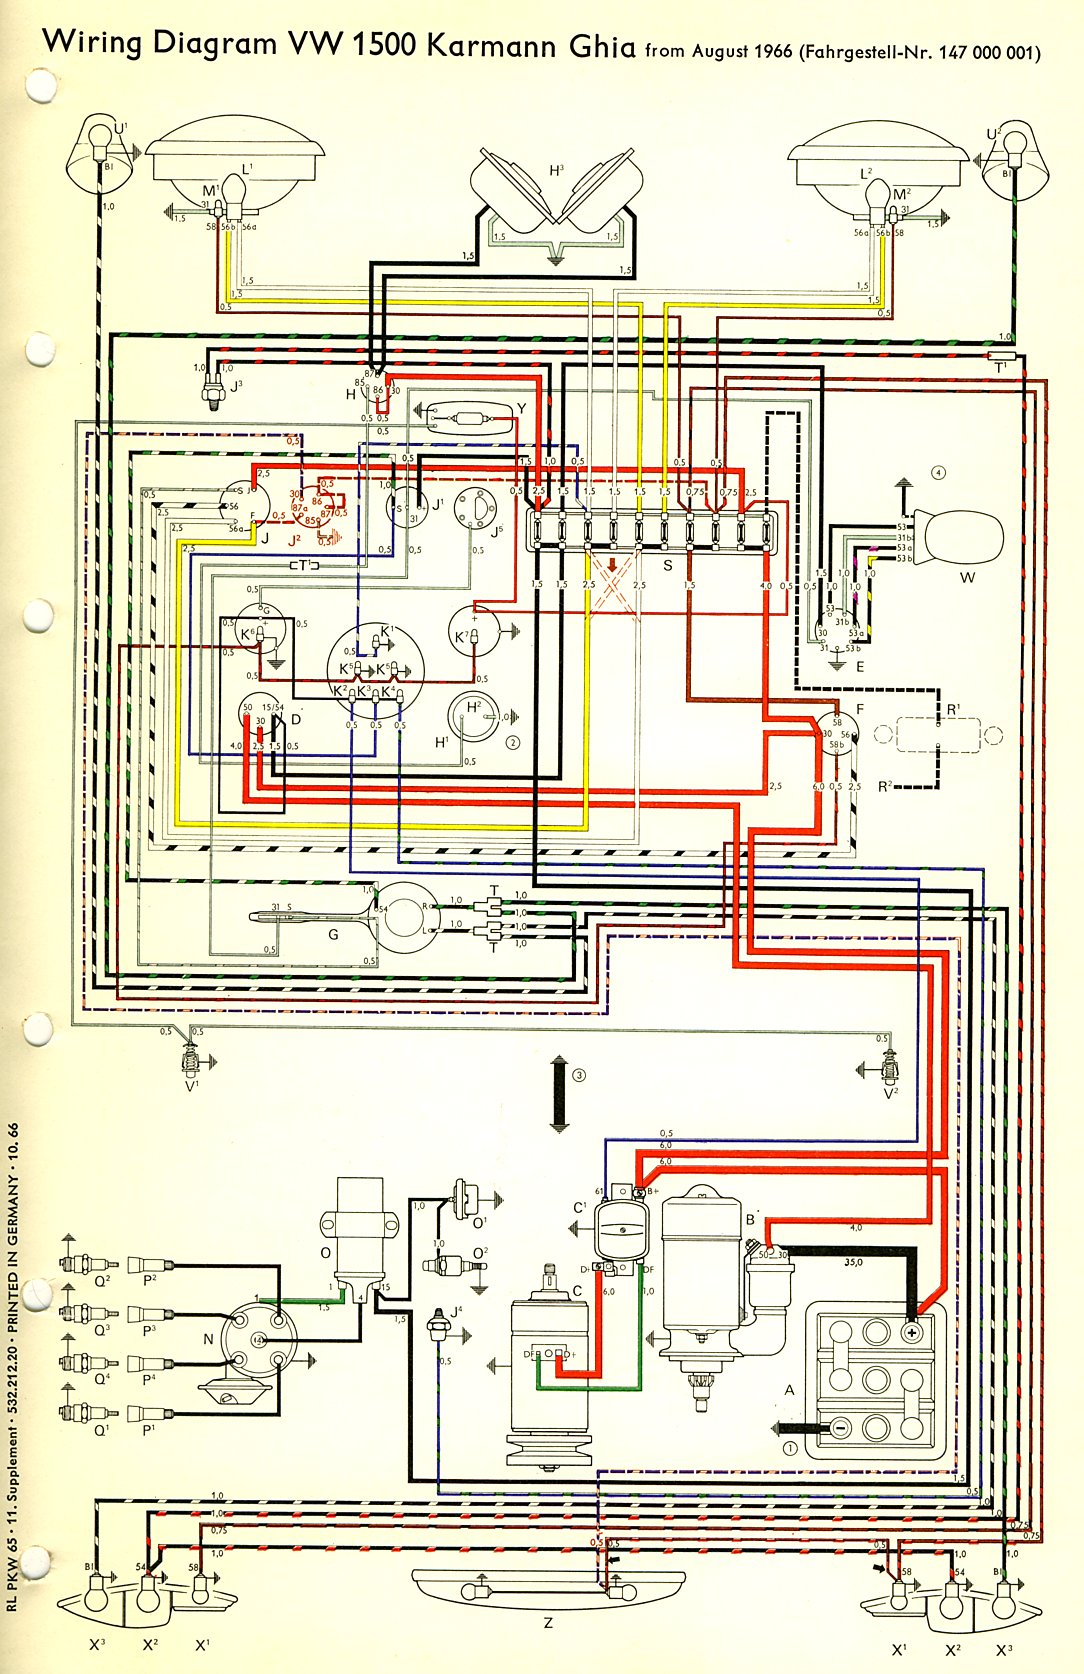 1971 vw karmann ghia wiring diagram  1971  free engine